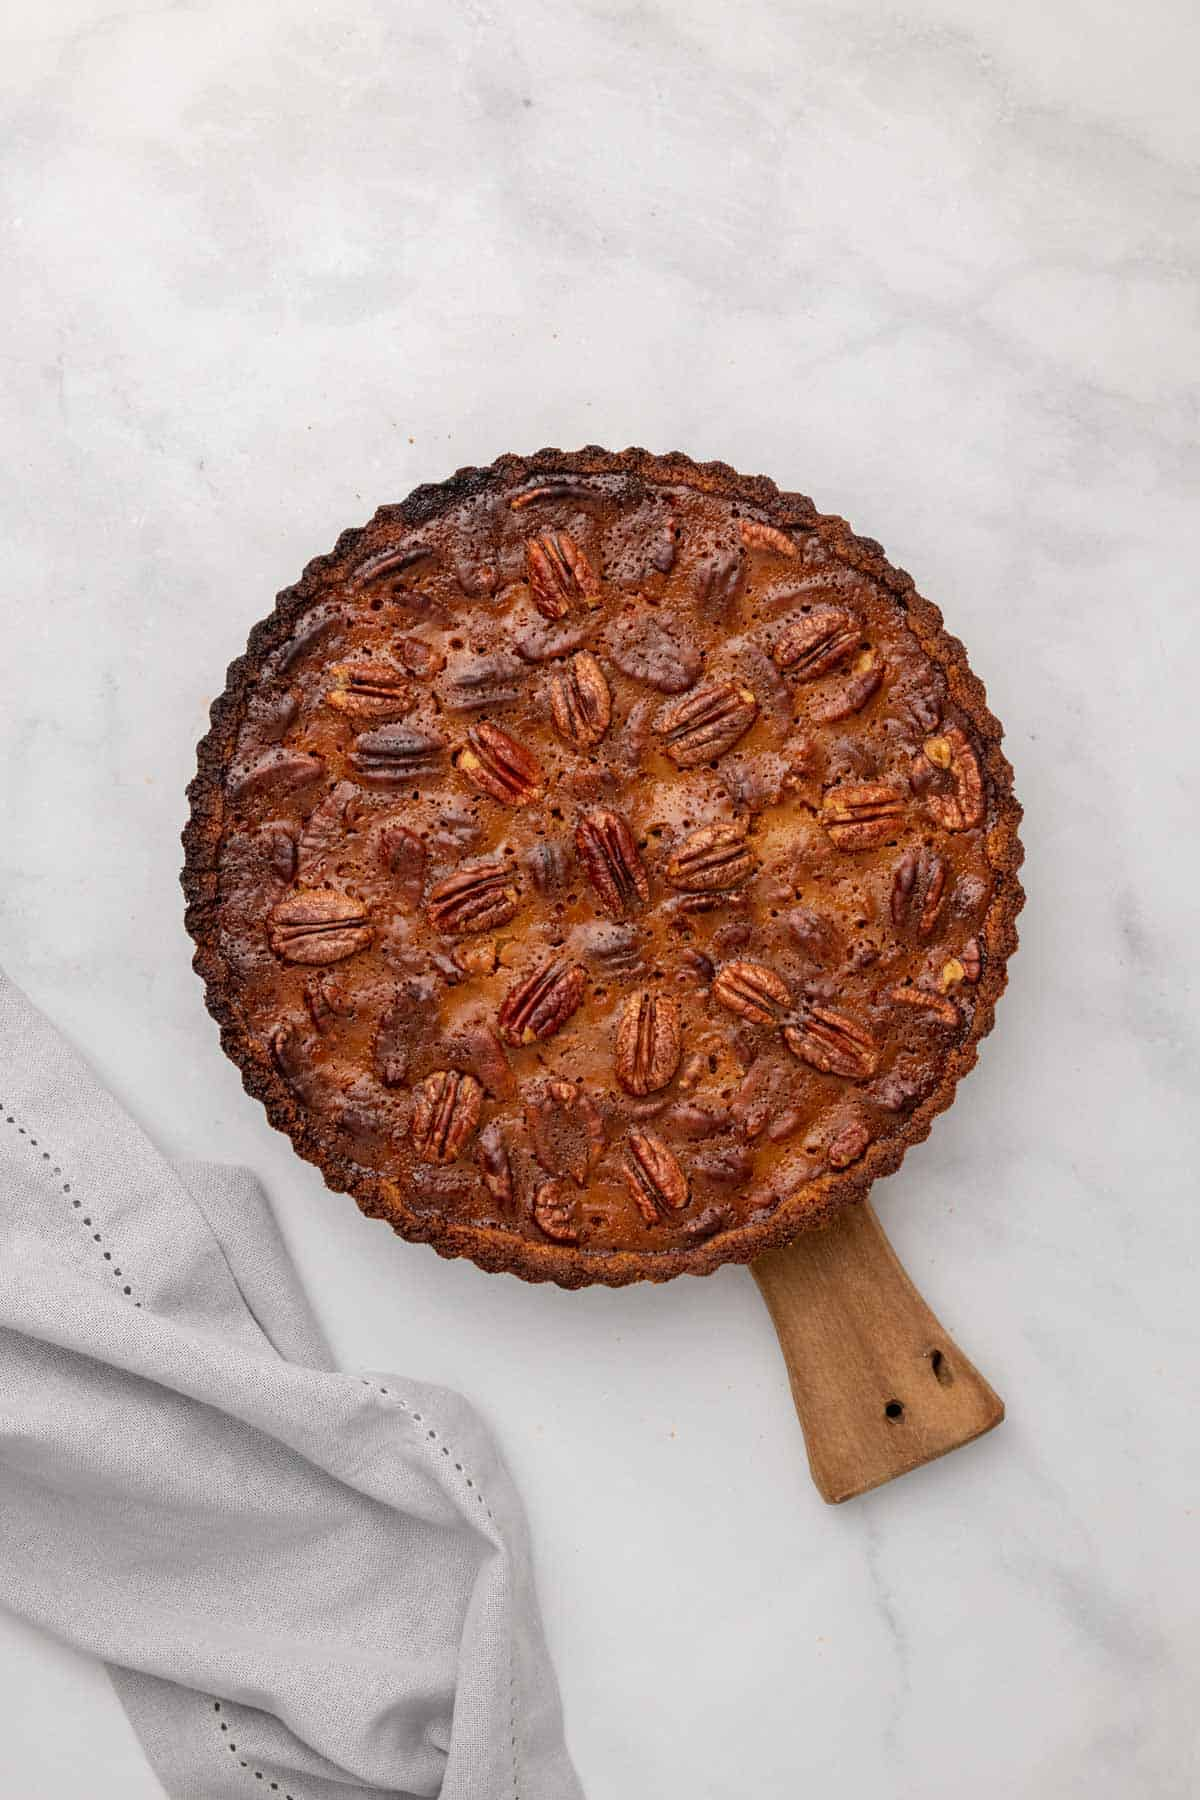 Baked pecan pie on a wooden serving board, as seen from above